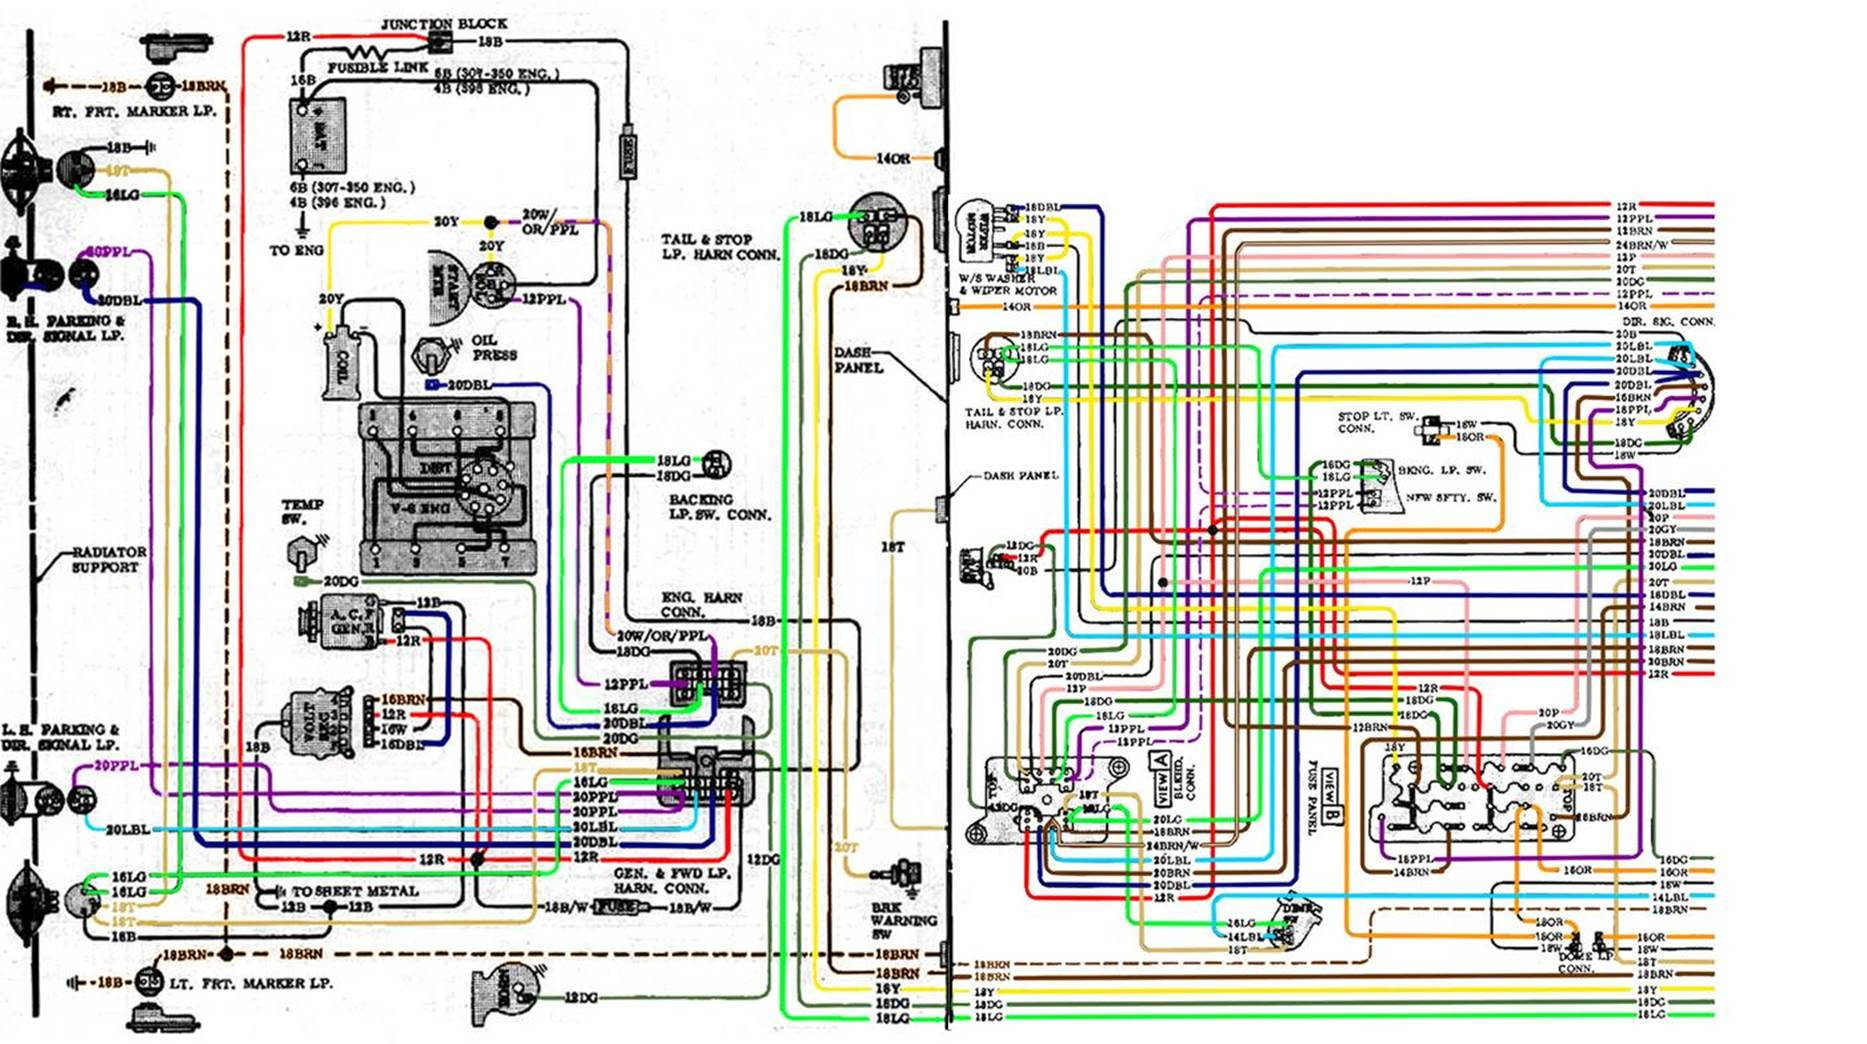 1972 Chevy Truck Wiring Harness Diagram - Wiring Block Diagram on 2003 mustang wiring harness, 1964 mustang wiring harness, 1989 mustang wiring harness, 2004 mustang wiring harness, 2000 mustang wiring harness, 1994 mustang wiring harness, 1965 mustang wiring harness, 1969 mustang wiring harness, 1986 mustang wiring harness, 1991 mustang wiring harness, 1973 mustang wiring harness, 1982 mustang wiring harness, 1970 mustang wiring harness, 2001 mustang wiring harness, 1988 mustang wiring harness, 1971 mustang wiring harness,